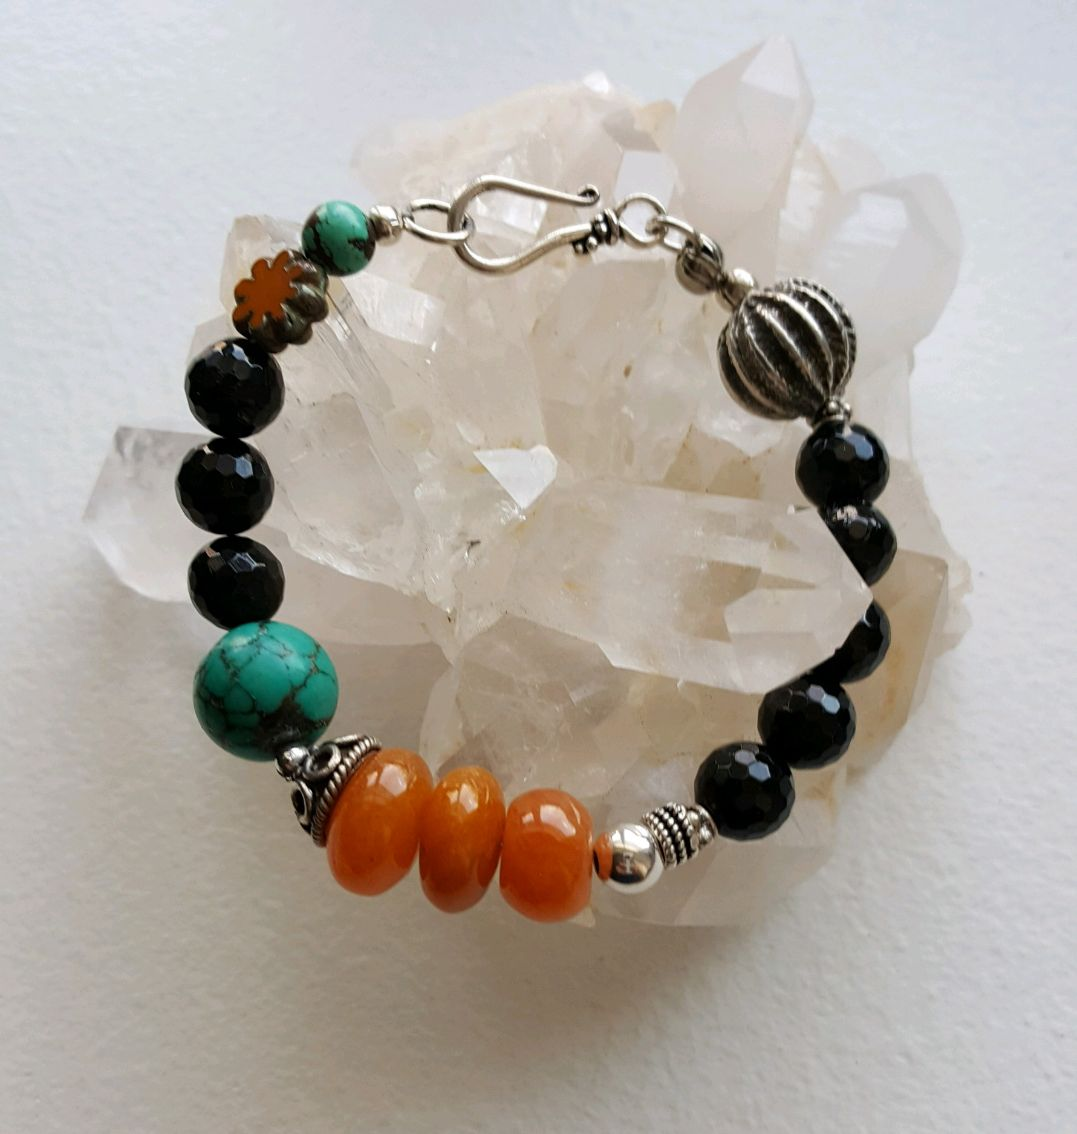 Black faceted Onyx beads, turquoise beads, orange agates, sterling beads and clasp